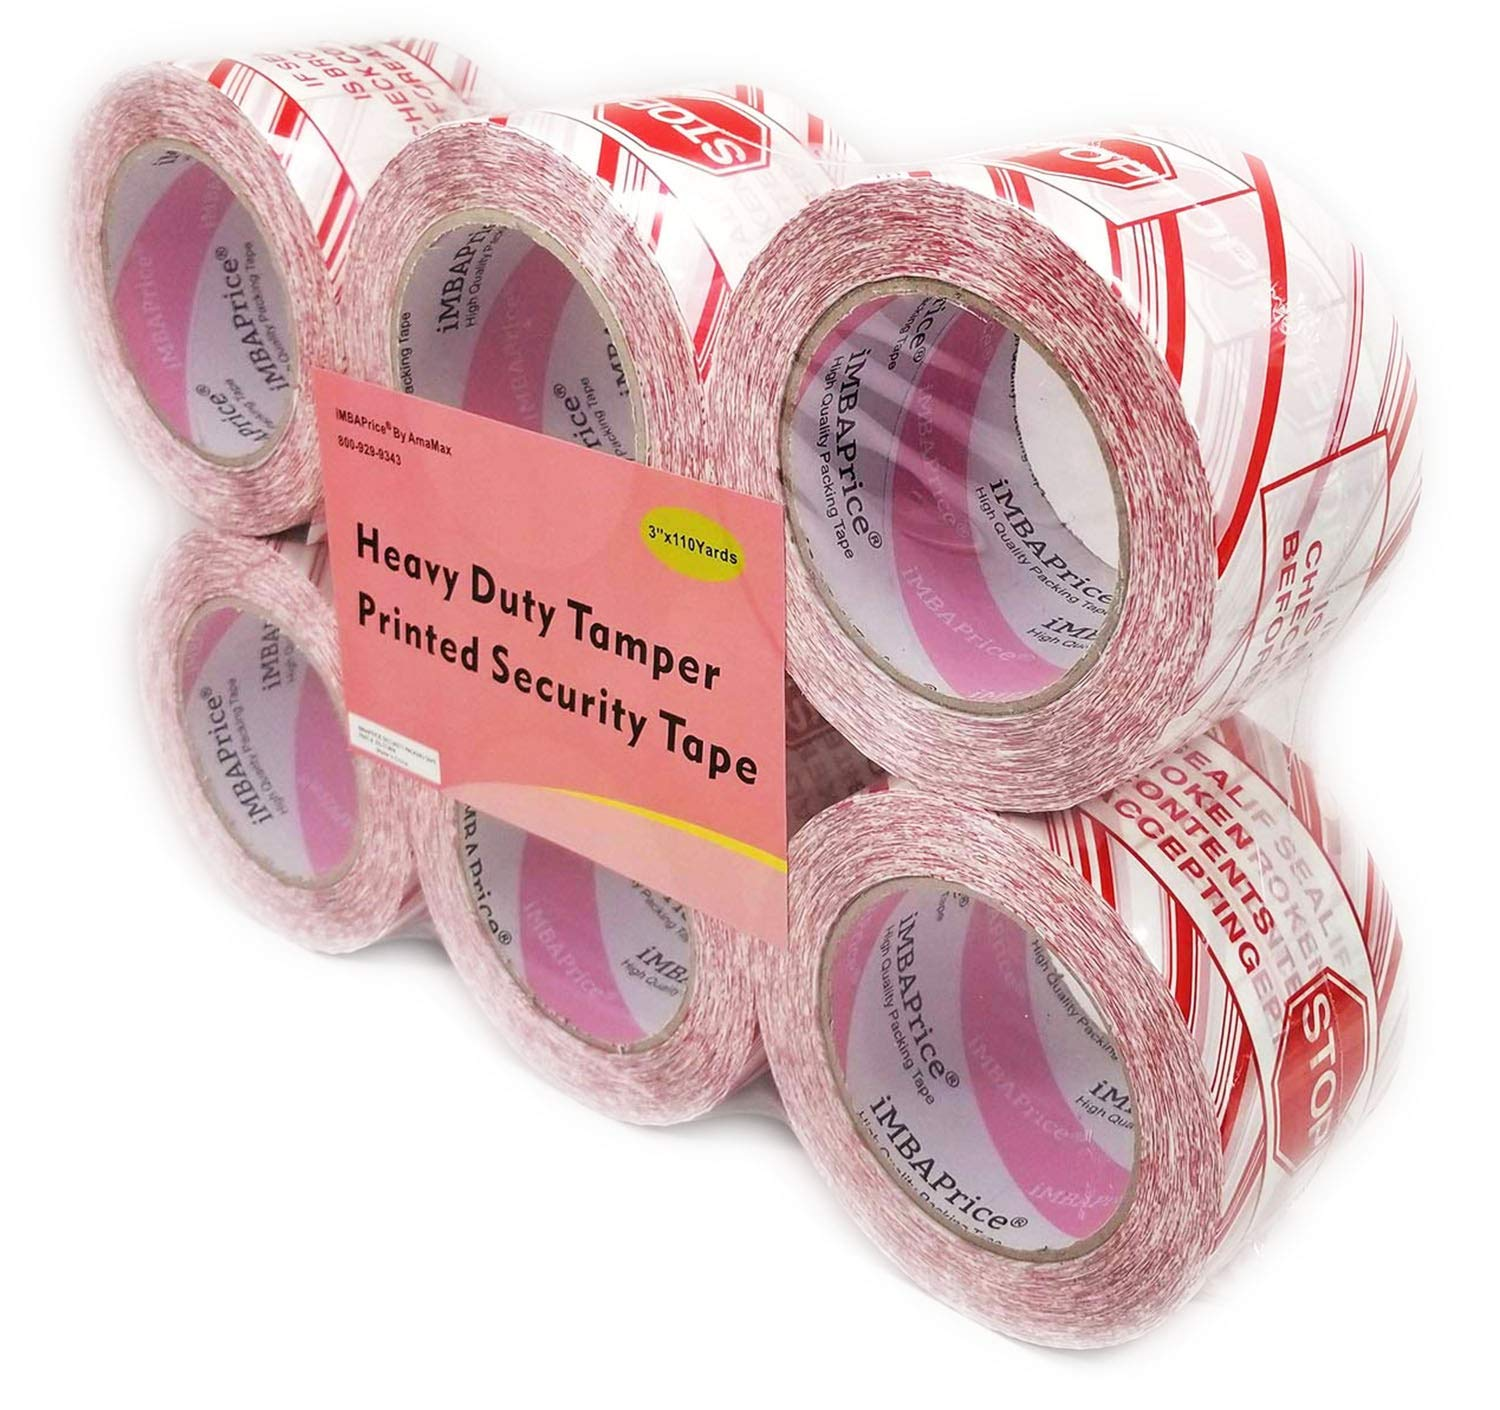 iMBAPrice 6 Rolls of 110 Yard(6X 330 Feet Long) 3-Inches Wide Printed White Carton Sealing Tape with Red Lettering -''IF Seal is Broken'' - 3'' Stop Sign Security Shipping Tape